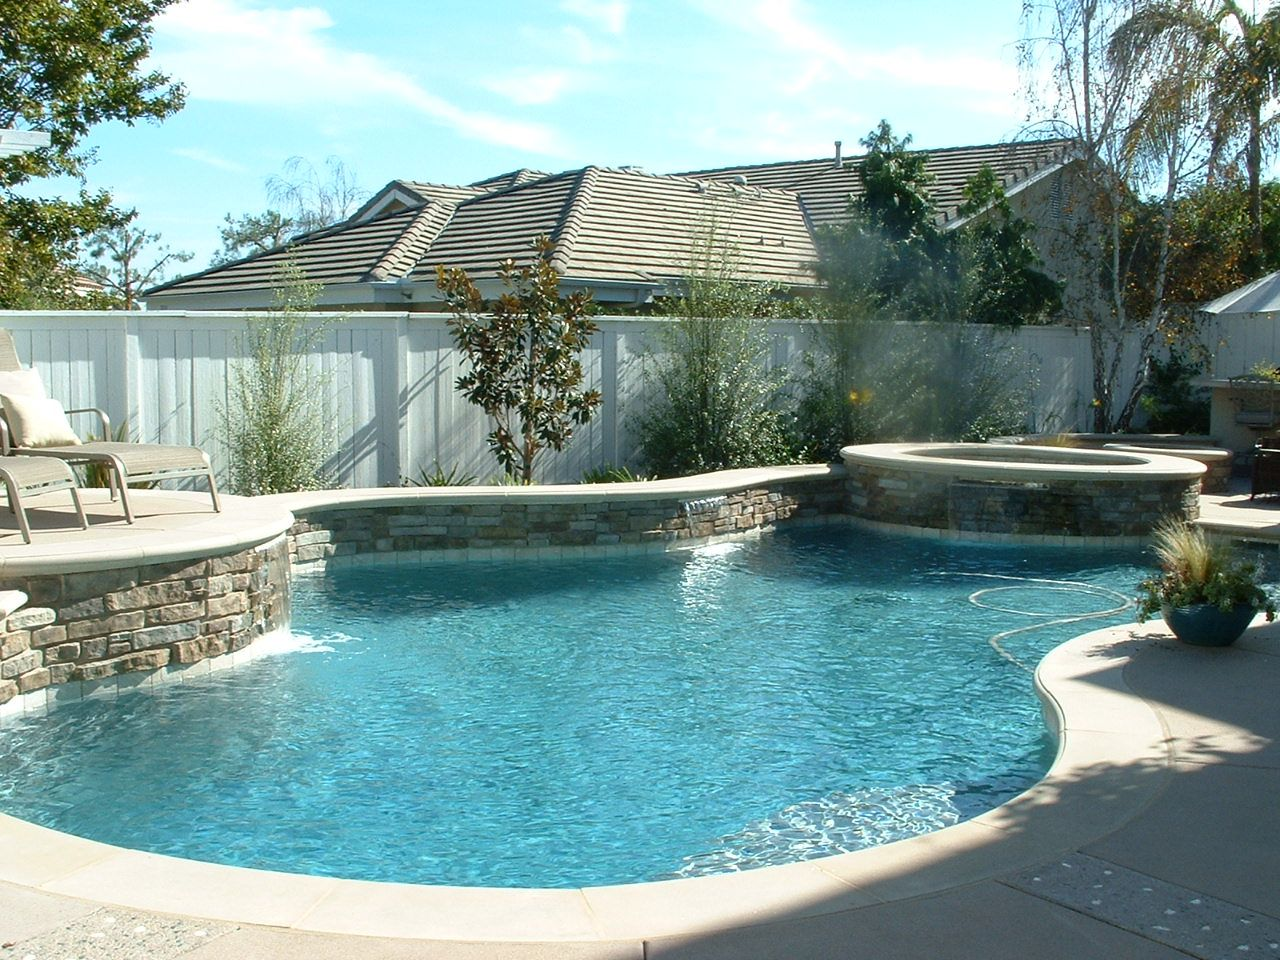 Pools and spas in carlsbad ca san diego dream pools and for Pool and spa images